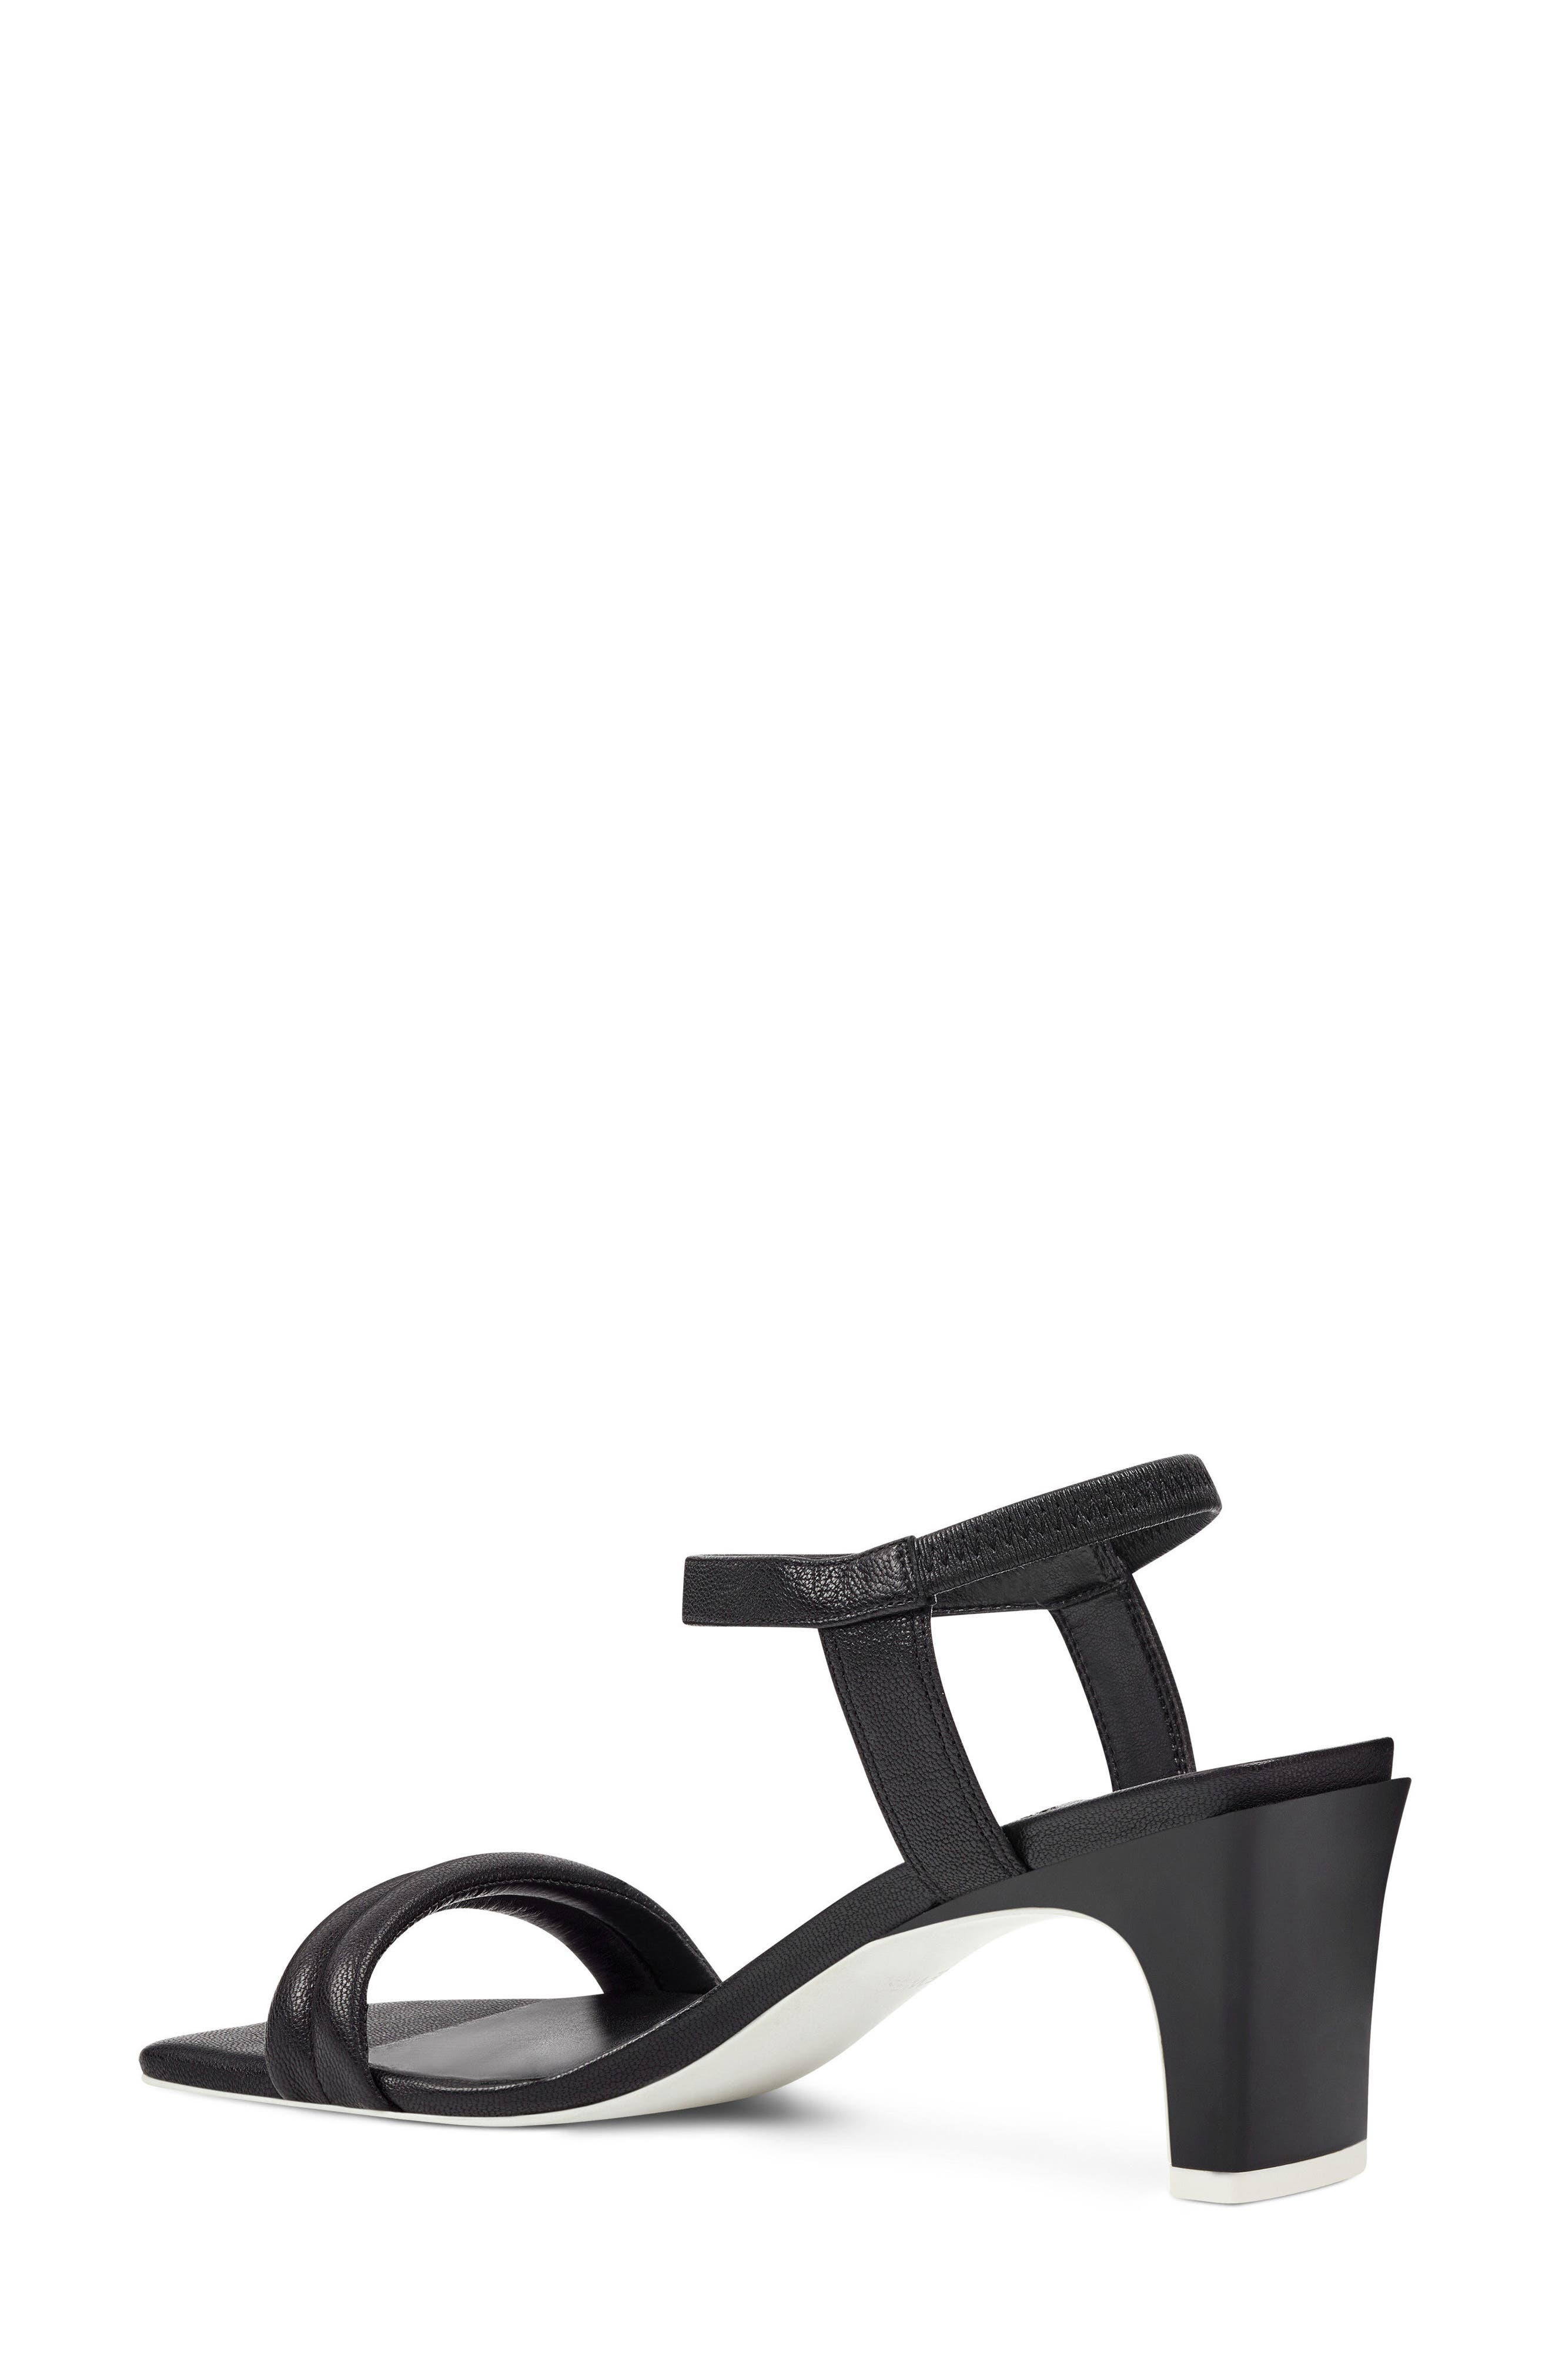 Urgreat Ankle Strap Sandal,                             Alternate thumbnail 2, color,                             BLACK LEATHER